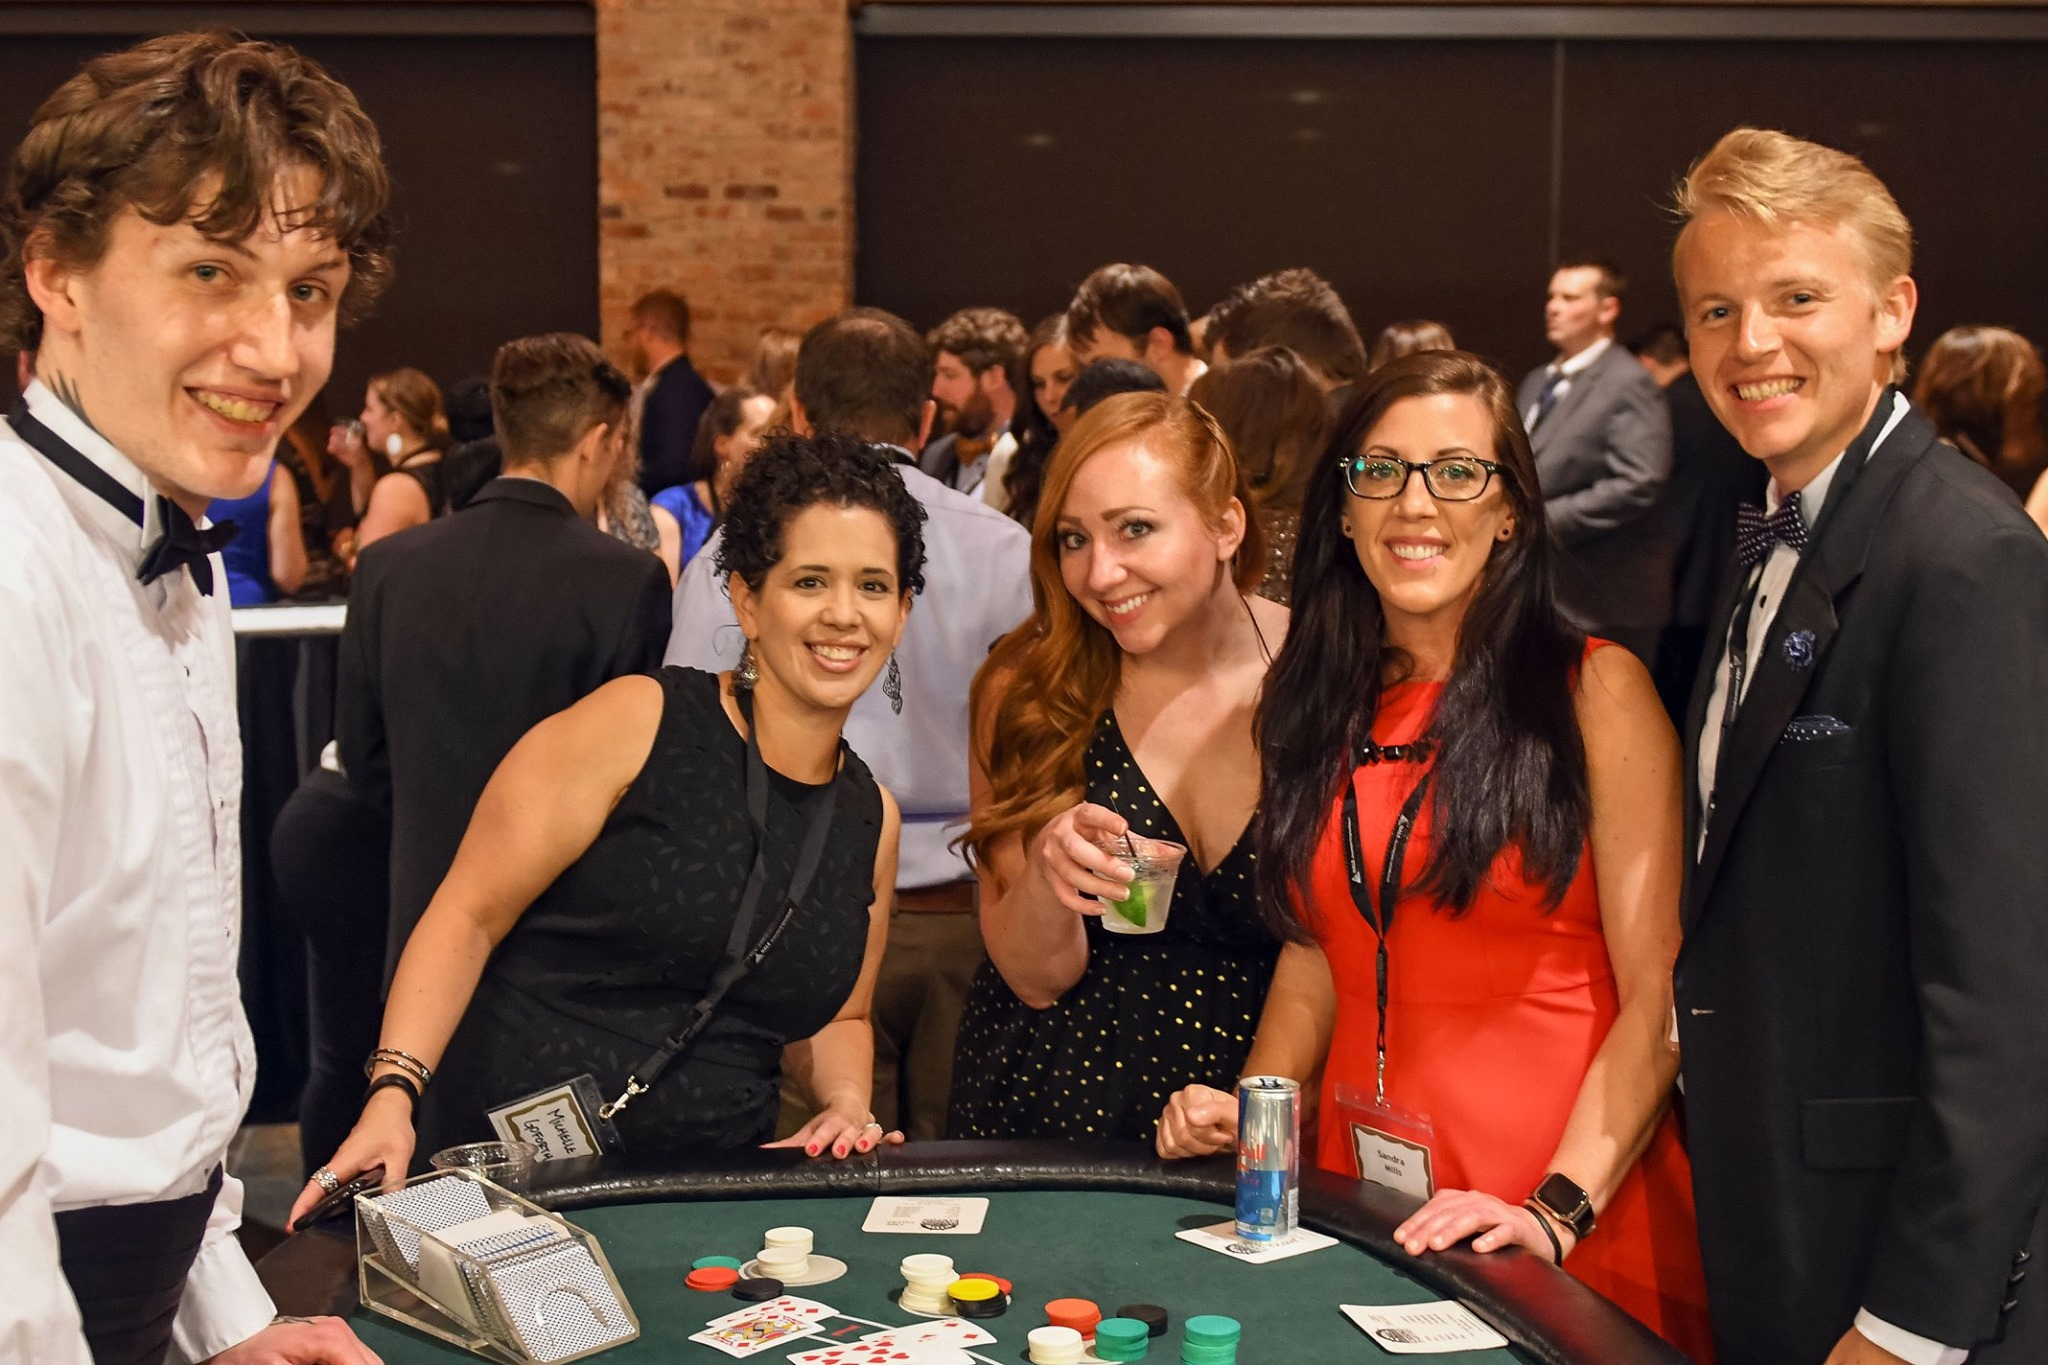 2nd Annual Young Lawyers Formal Casino Night: Casino Royale